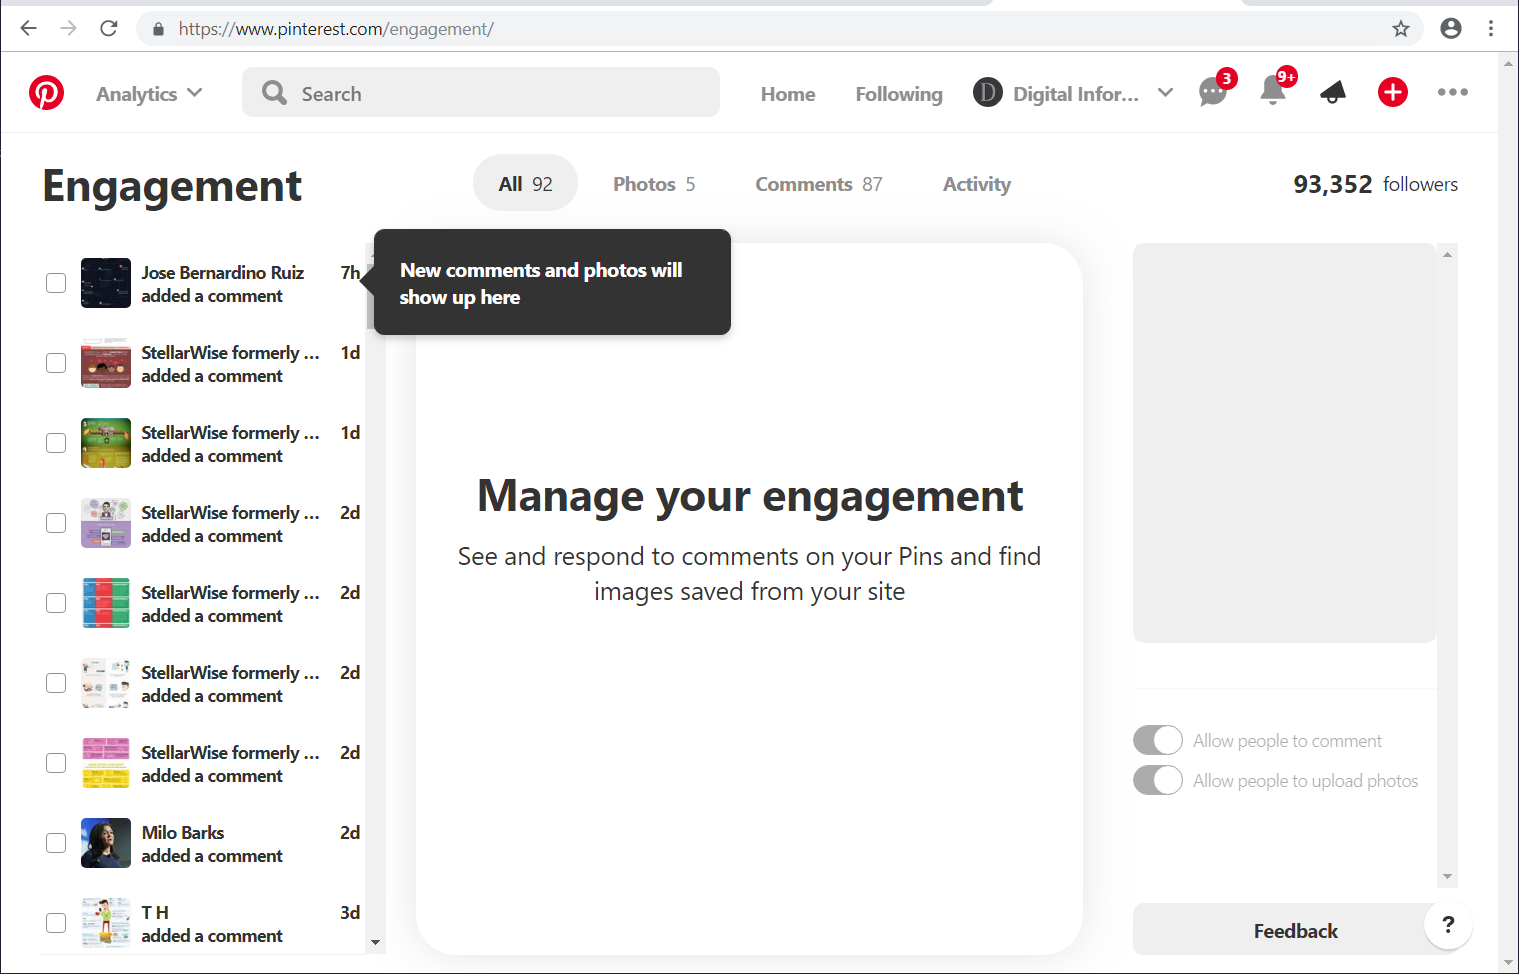 Pinterest Rolls Out an Engagement Tab to Centralize the Comments Moderation Process!